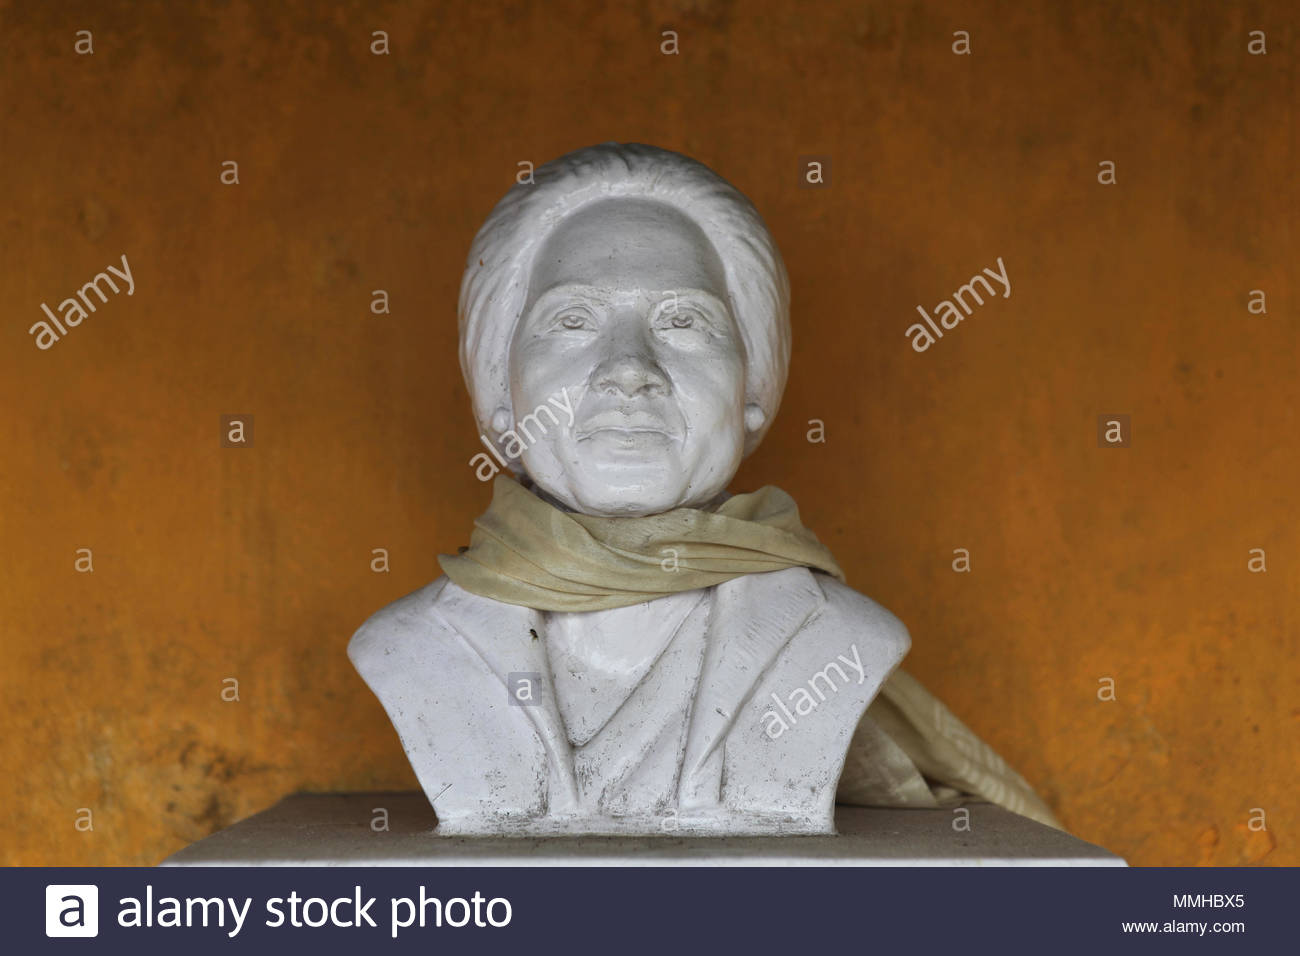 A bust in memory of the President and founder of the Tibetan Refugee Self-Help Centre in Darjeeling, India Lhacham Kusho Mrs. Deky Dolkar Thondup. The Stock Photo